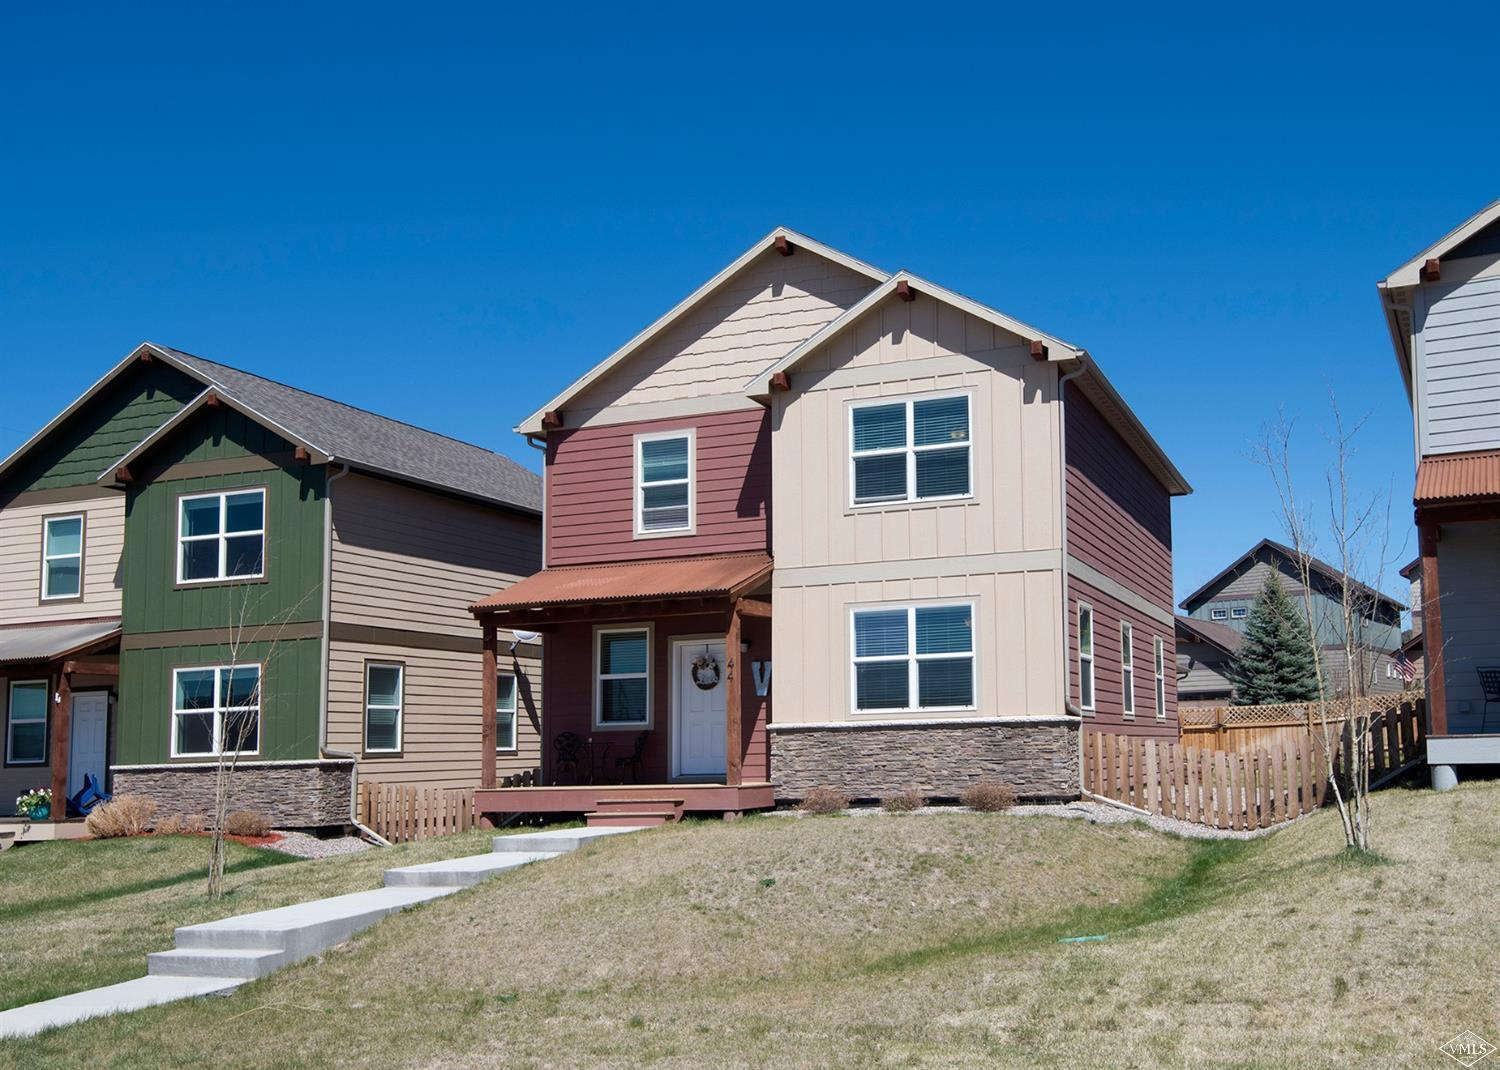 44 Steamboat Drive, Gypsum, CO 81637 Property Photo - Gypsum, CO real estate listing